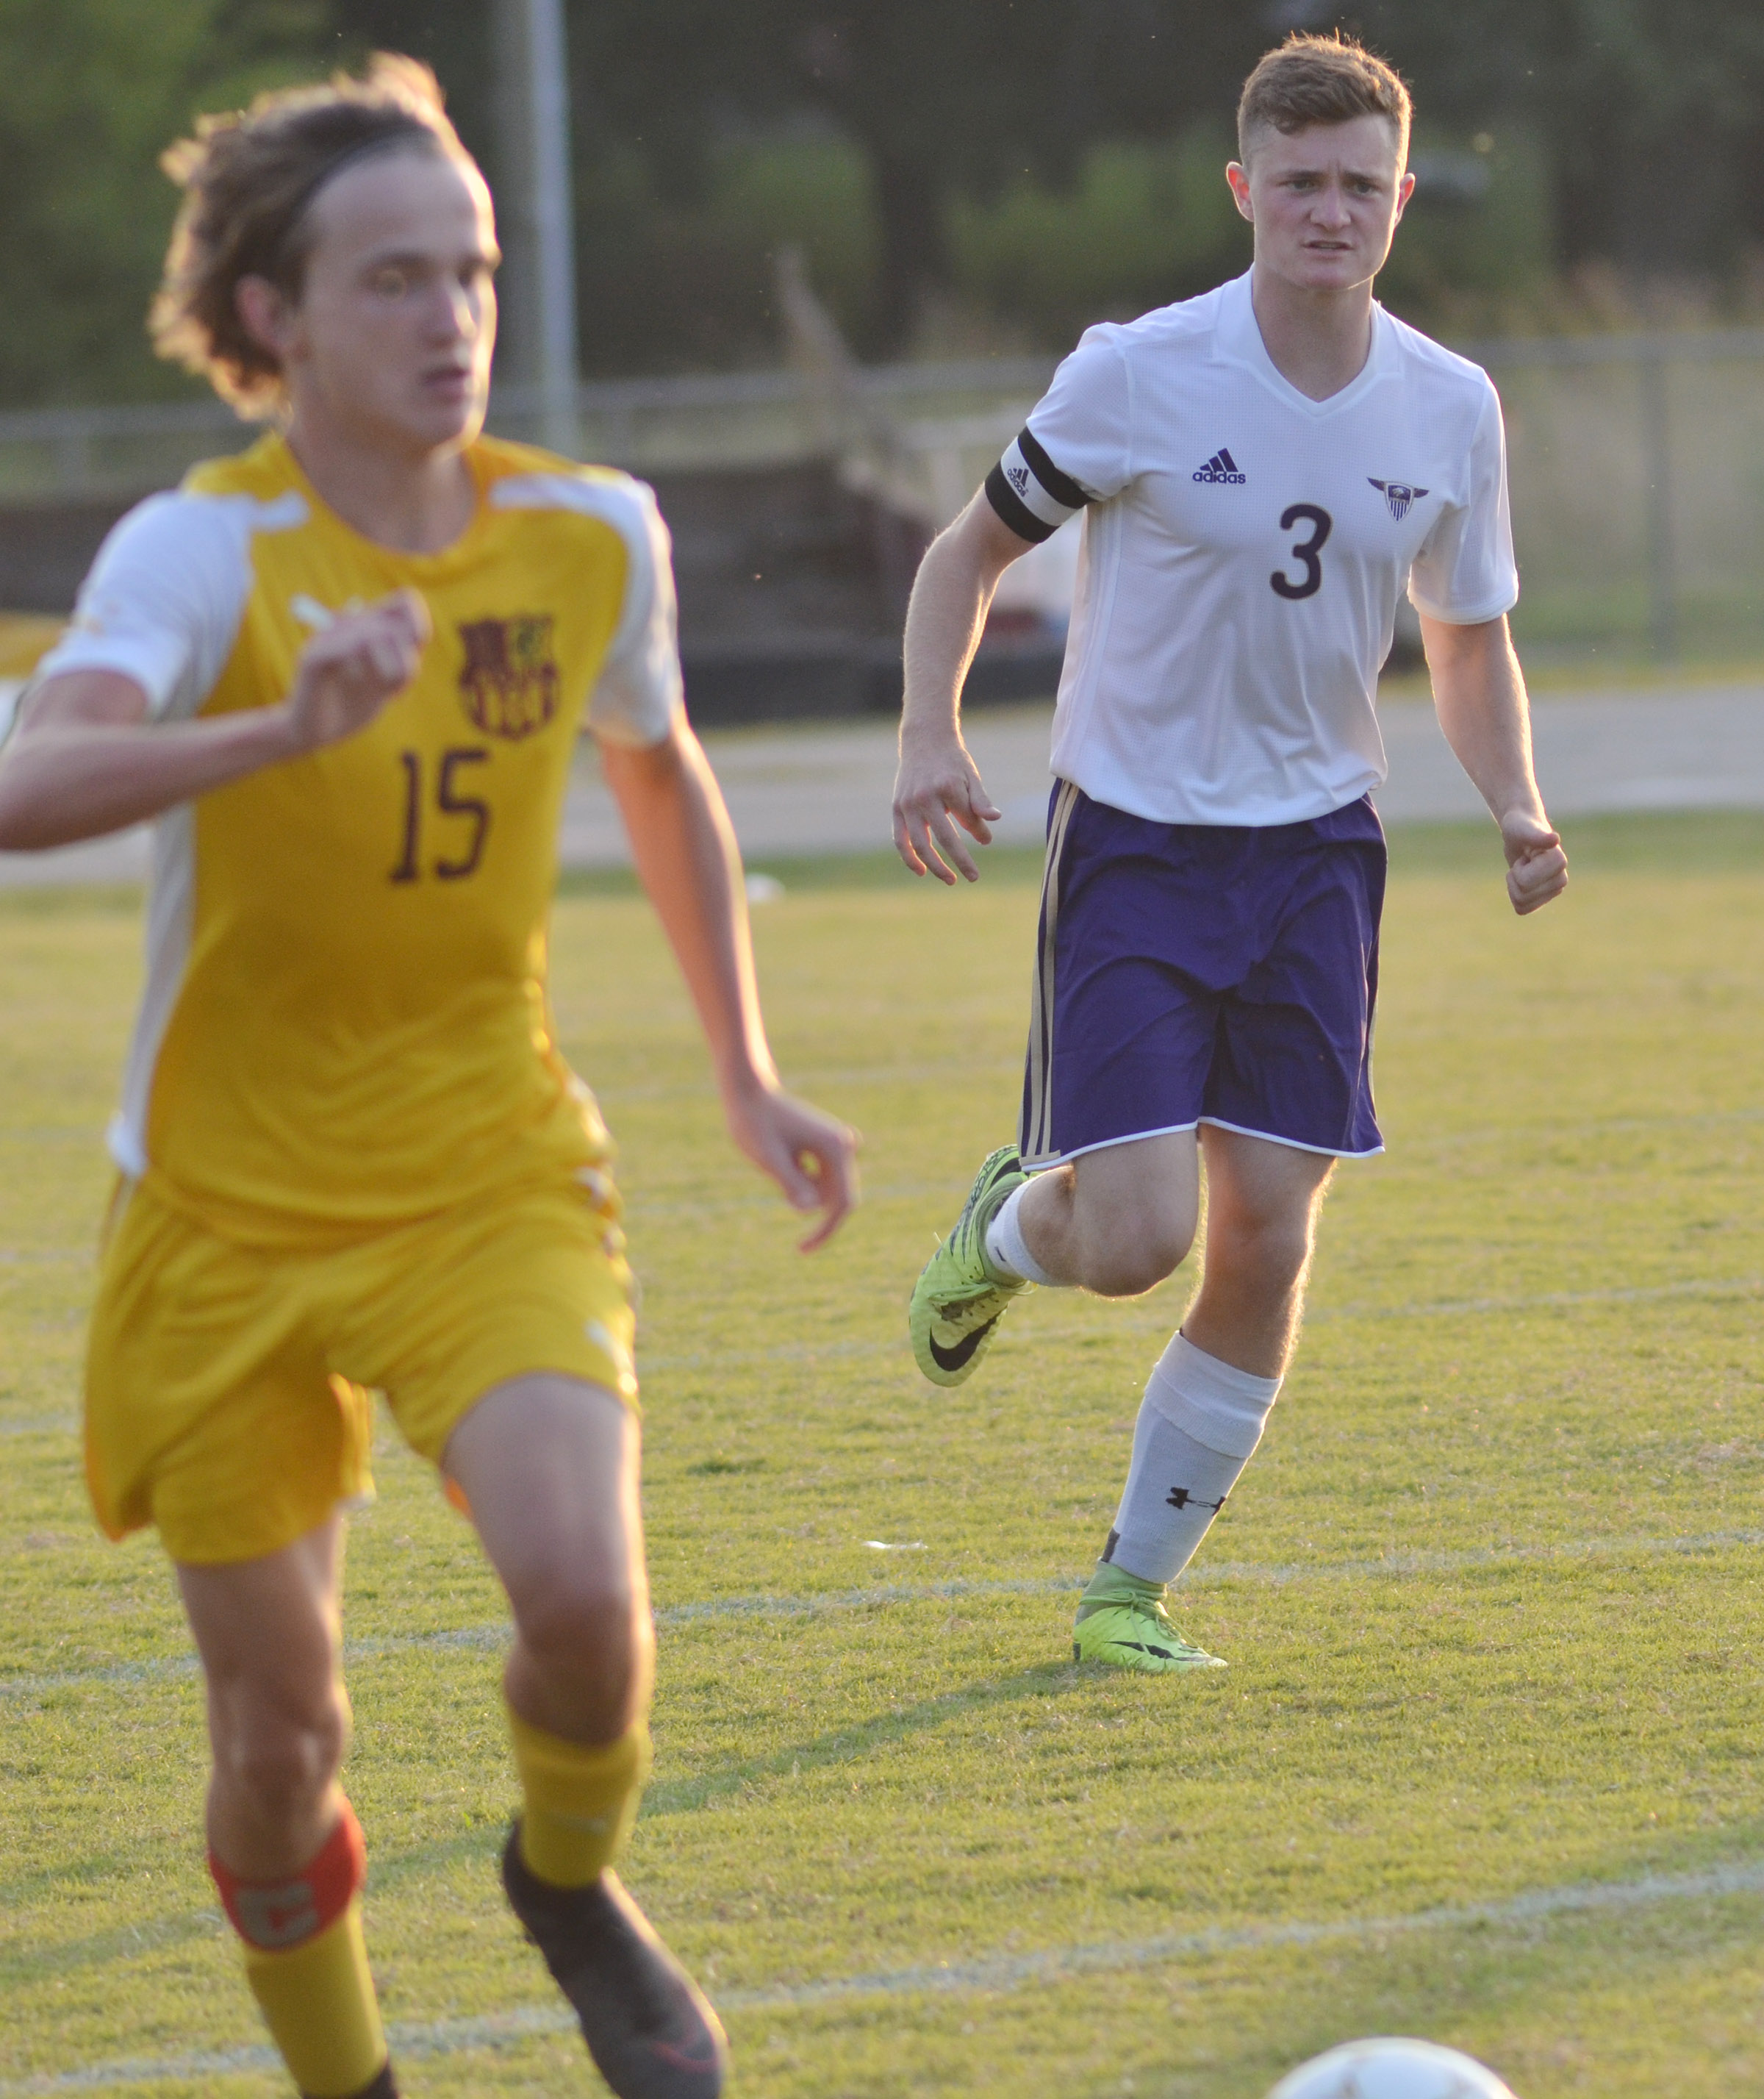 CHS senior Bryce Richardson runs to the ball.